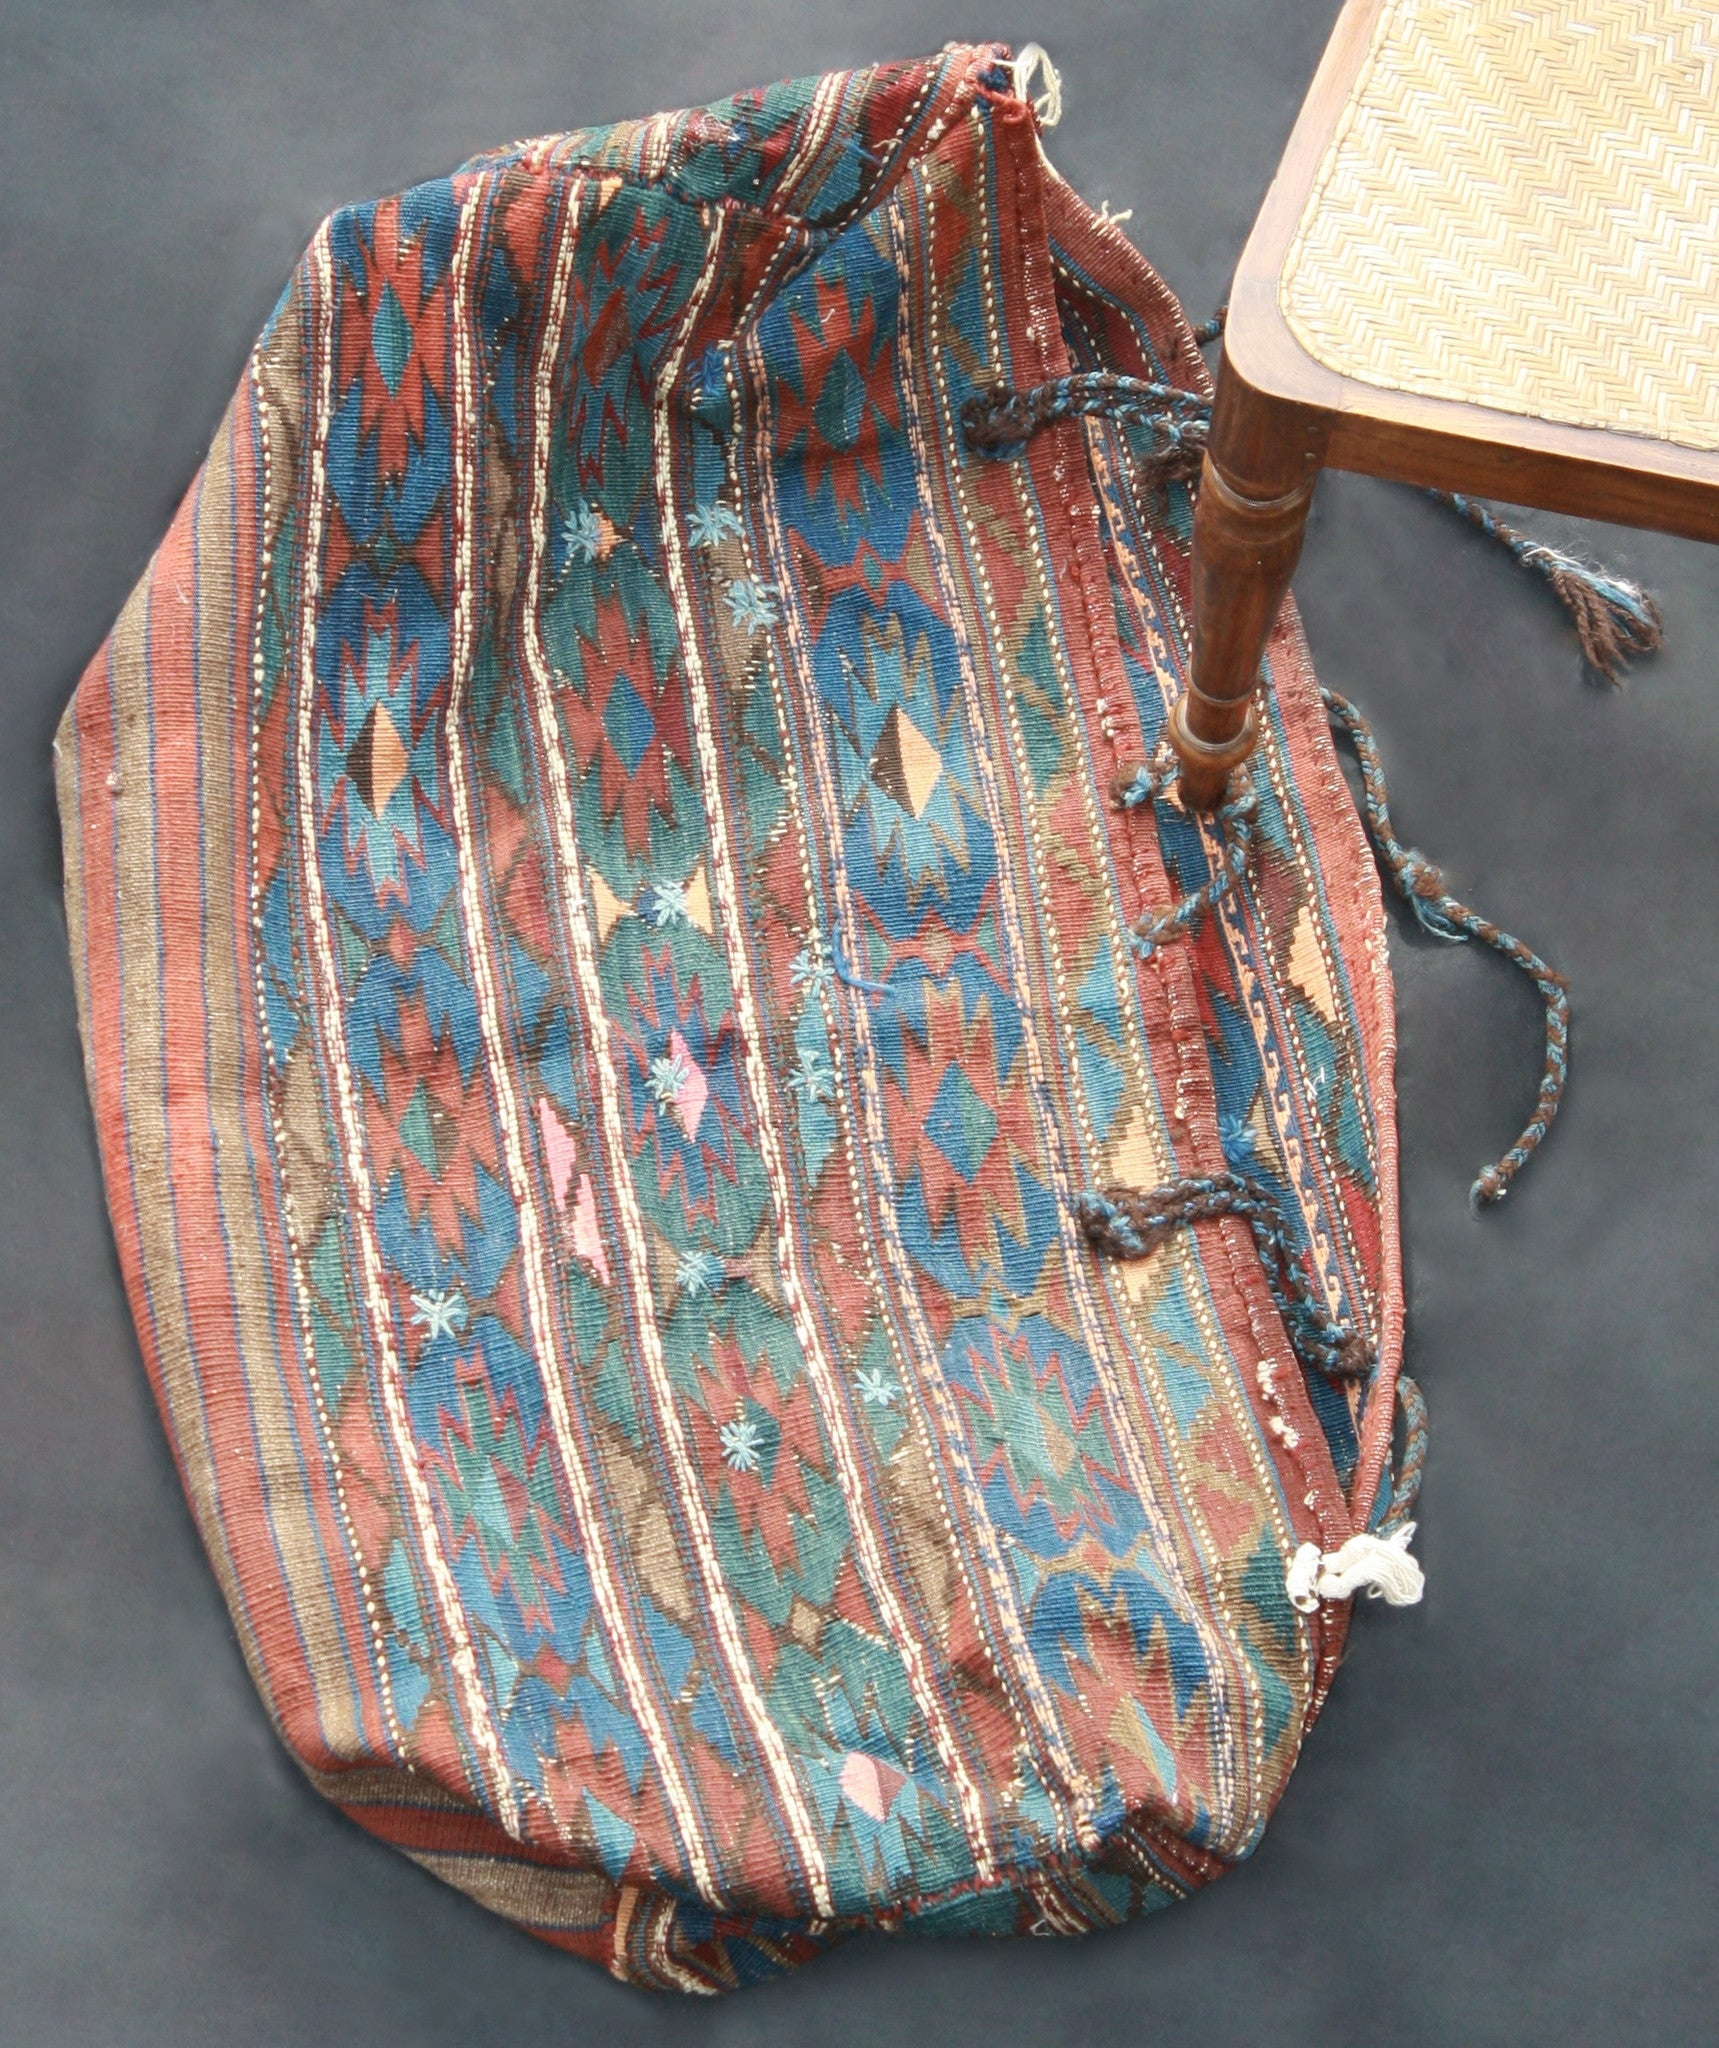 Kars Cradle Bag With Blue And Brown Design